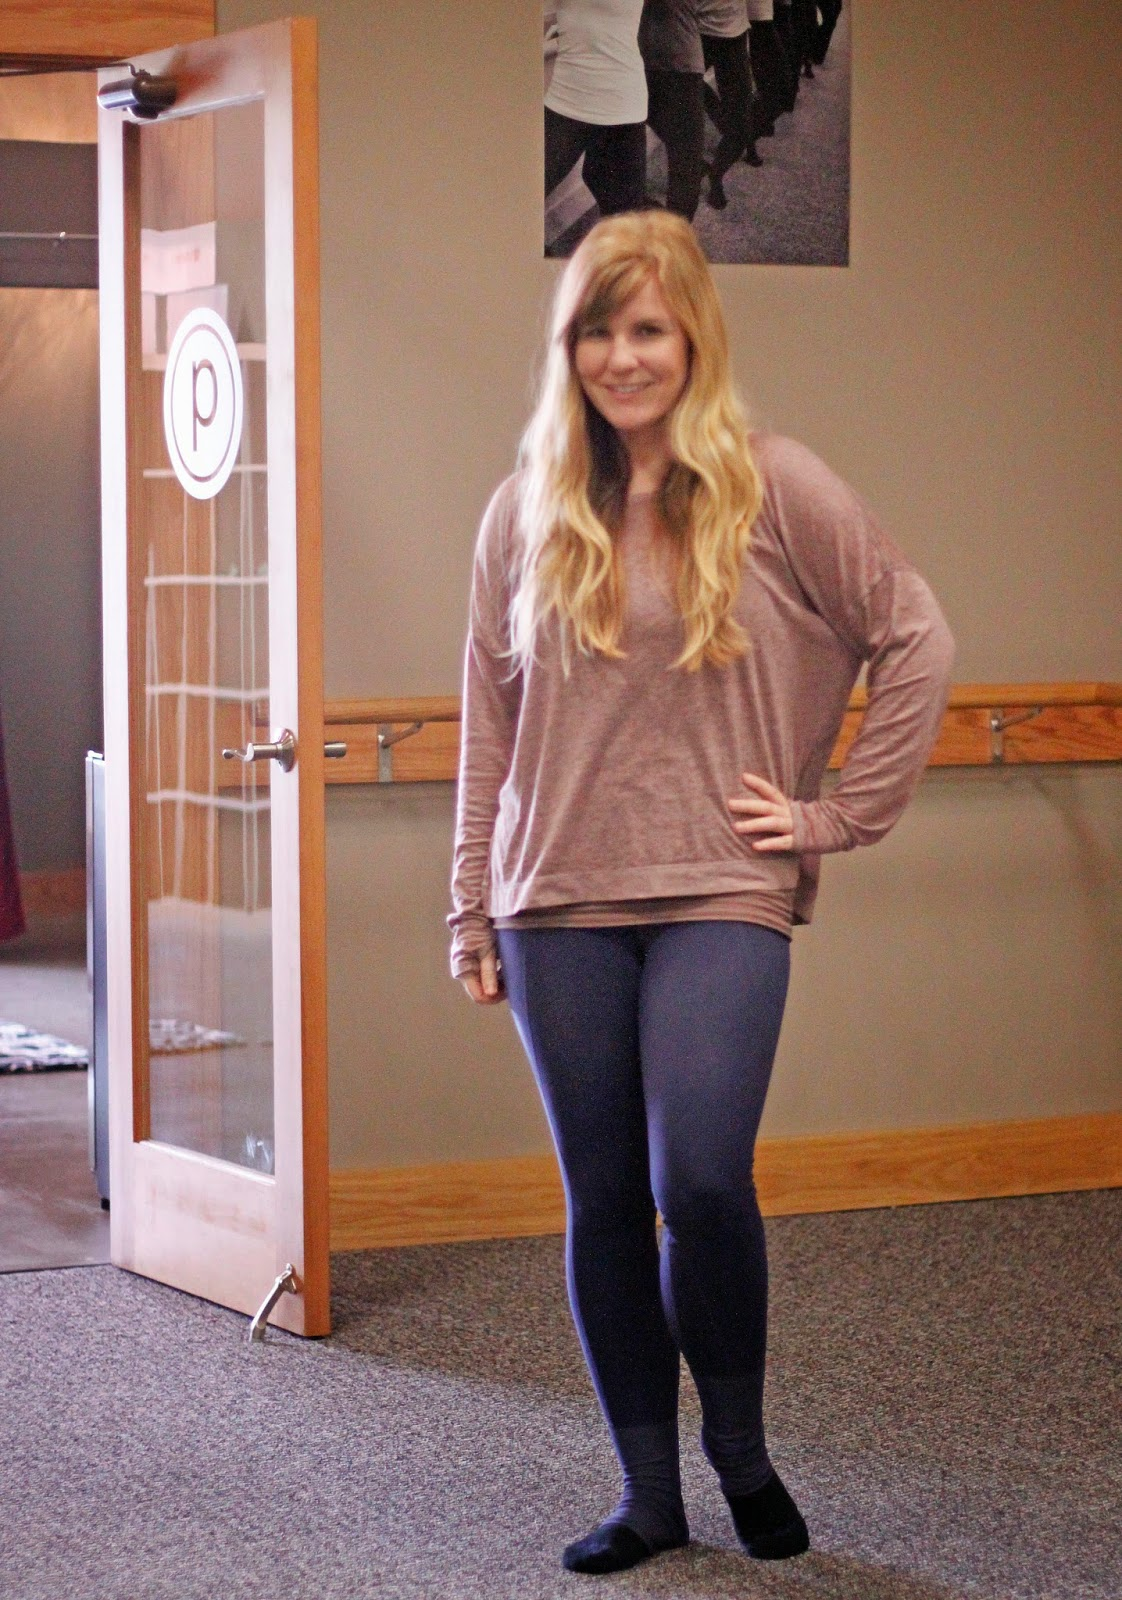 Bouncing back from baby at Pure Barre wearing Athleta